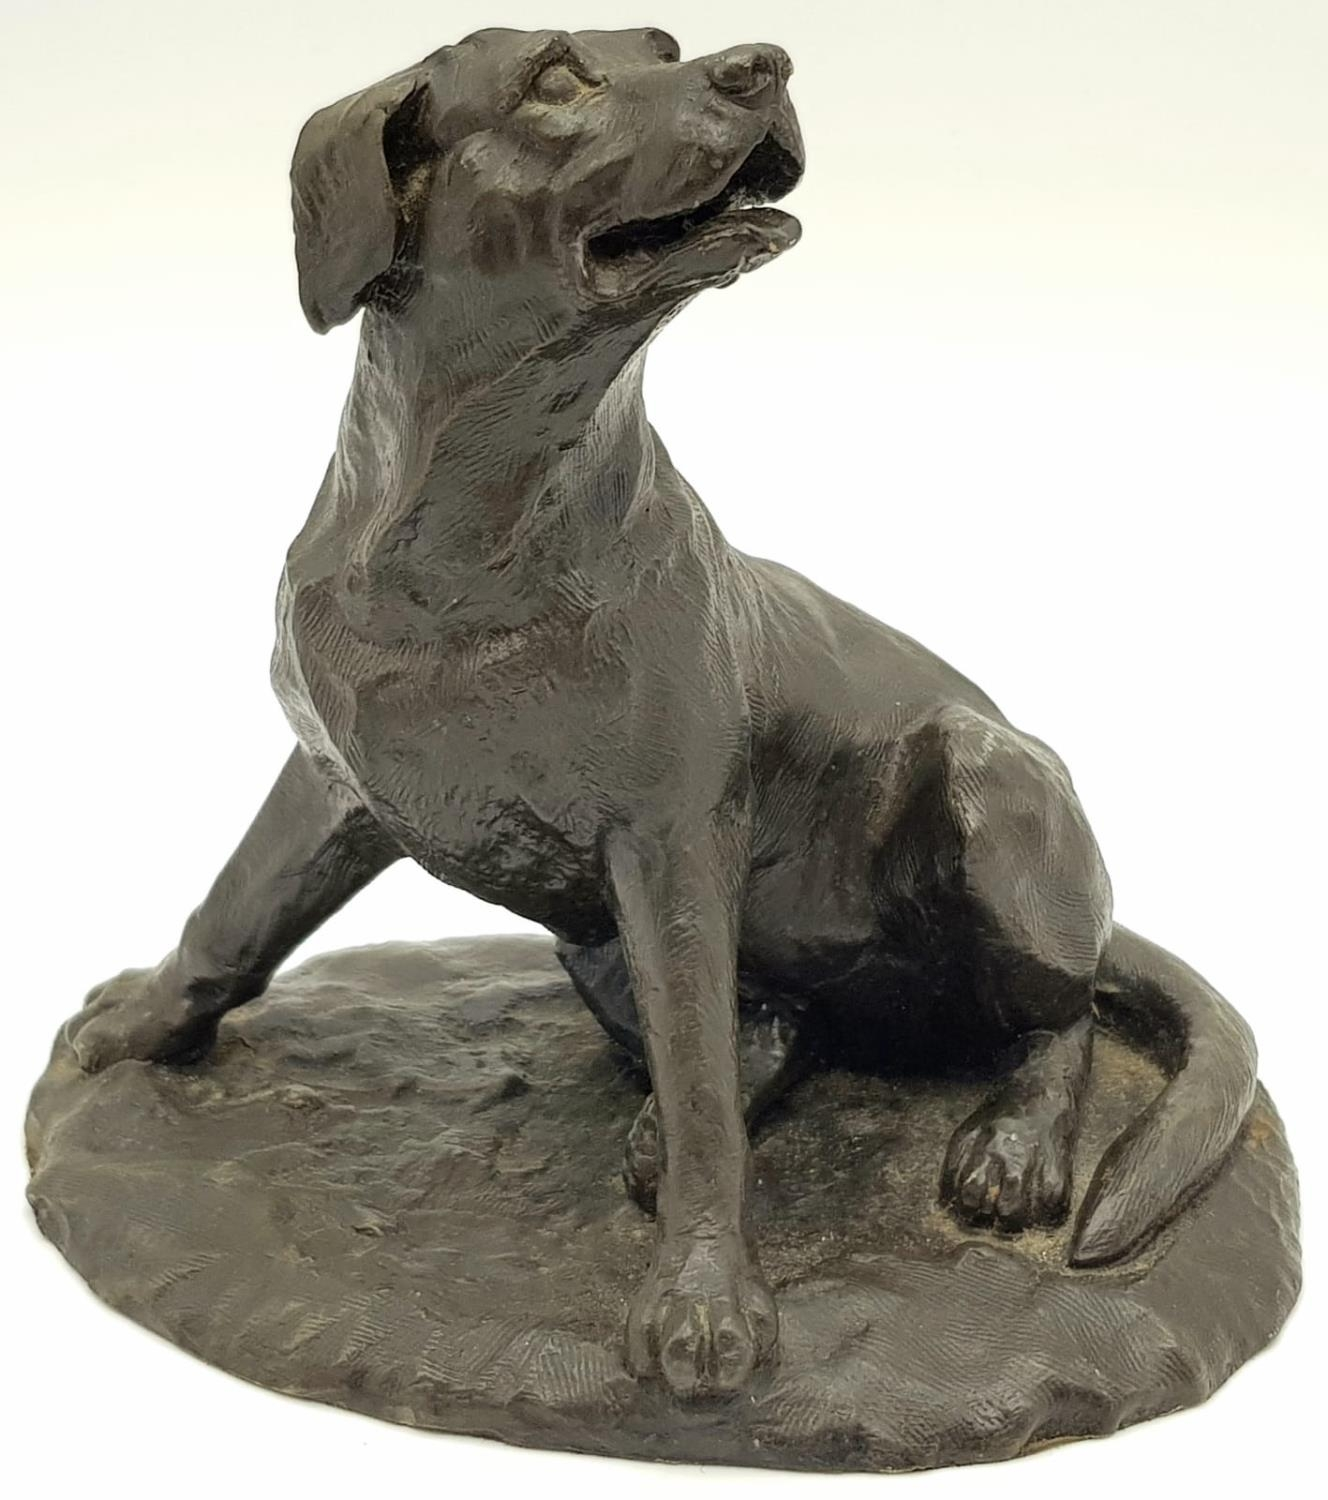 A BRONZE FIGURE OF A SITTING DOG. 767gms 14cms tall.